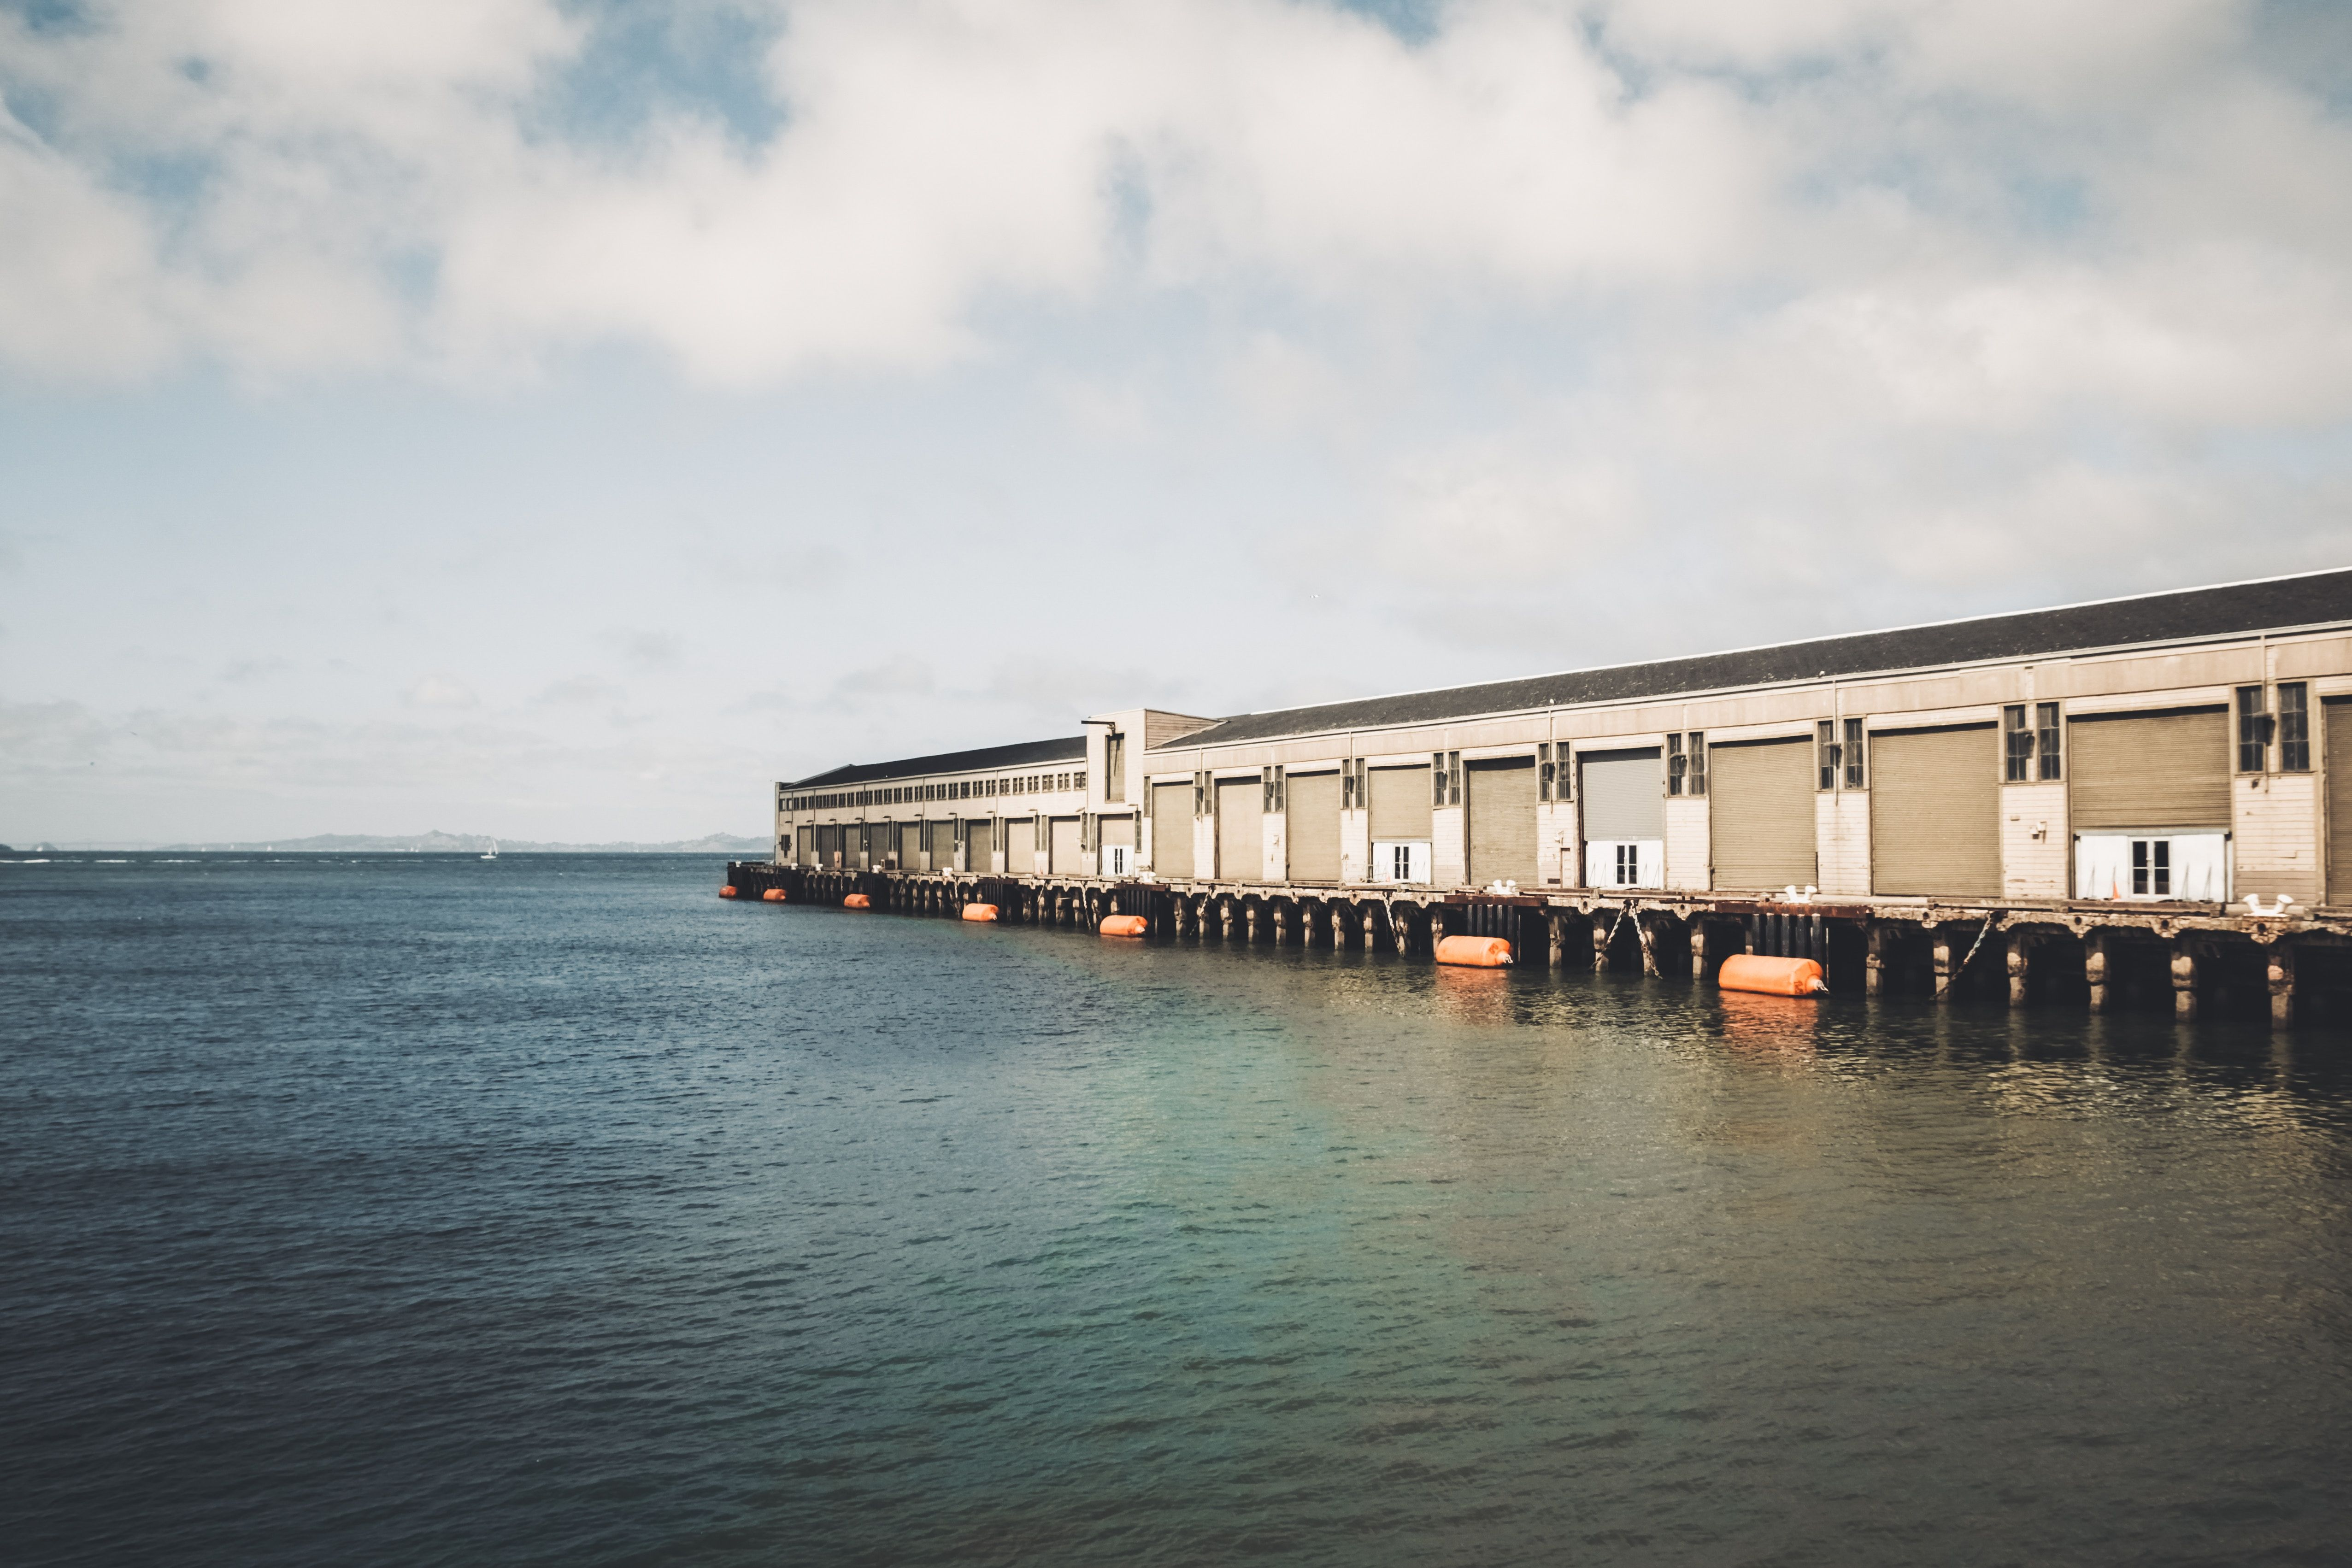 Charter a bus to Pier 39